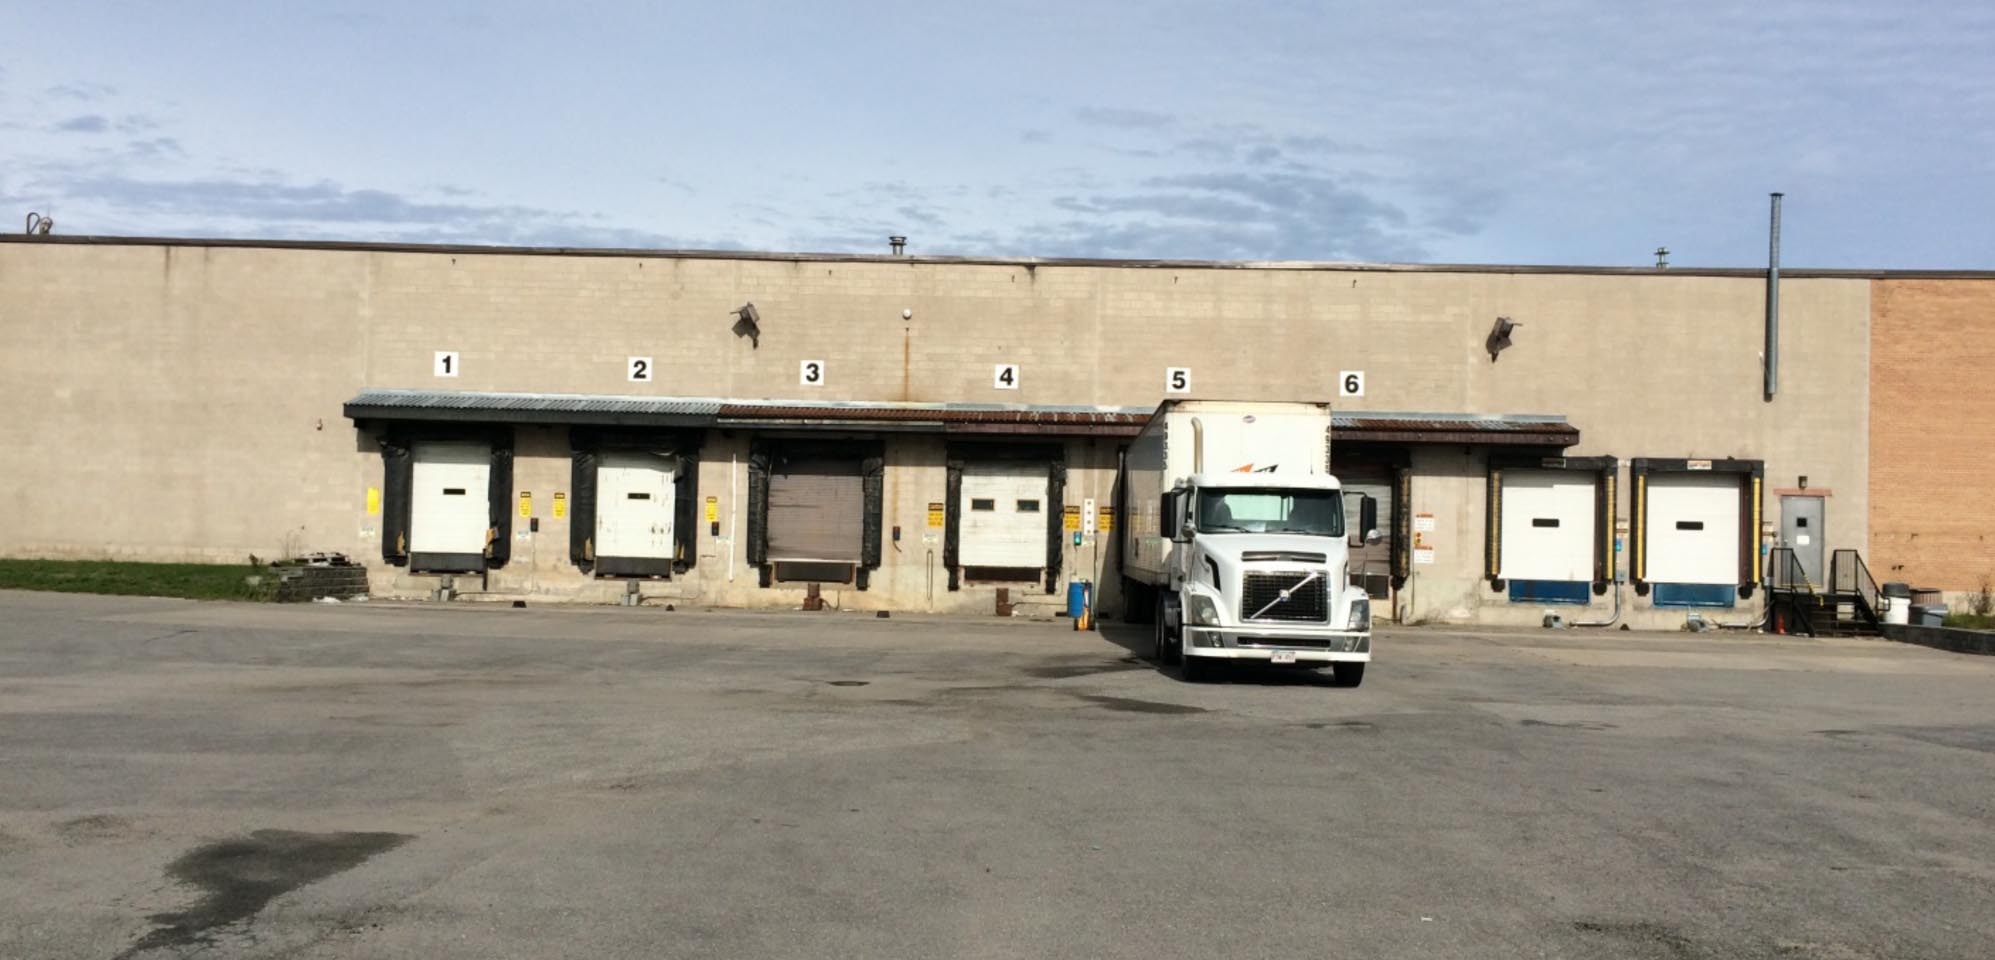 eastern warehouse docking bays